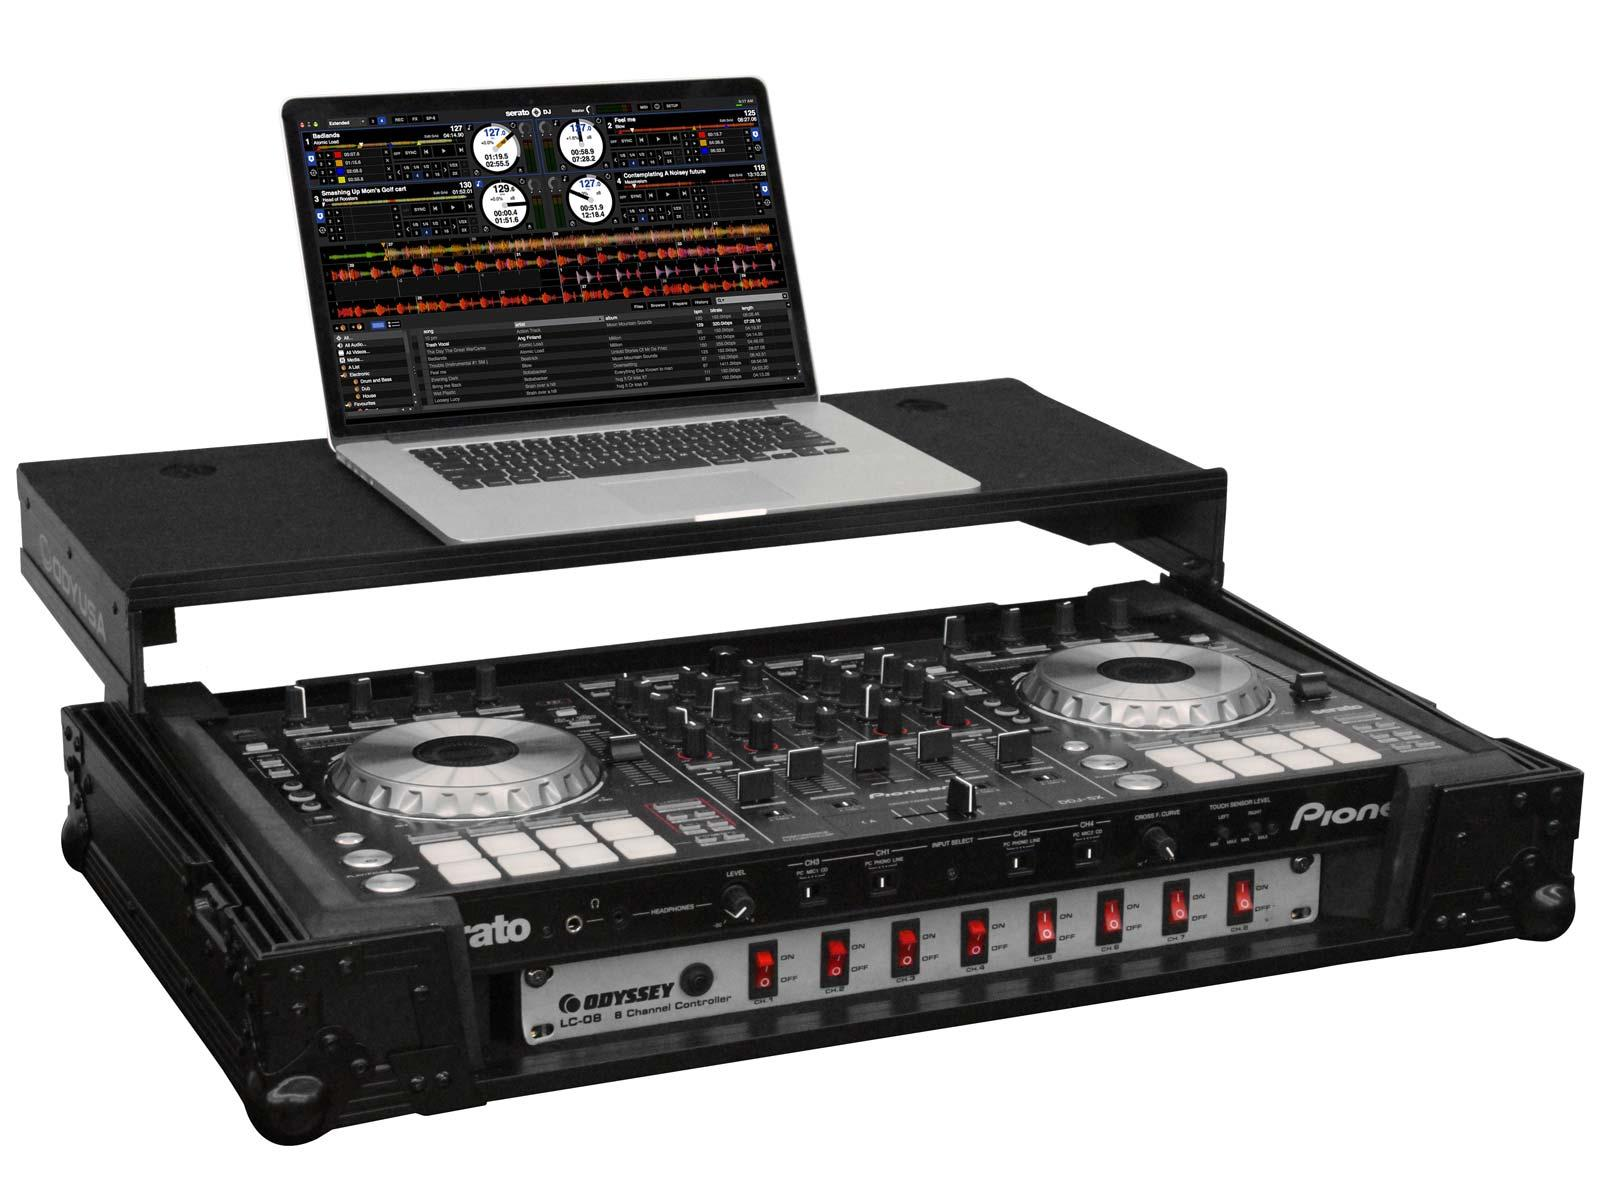 pioneer ddj sx2 serato dj controller fzgspiddjsx2bl case bundle agiprodj. Black Bedroom Furniture Sets. Home Design Ideas